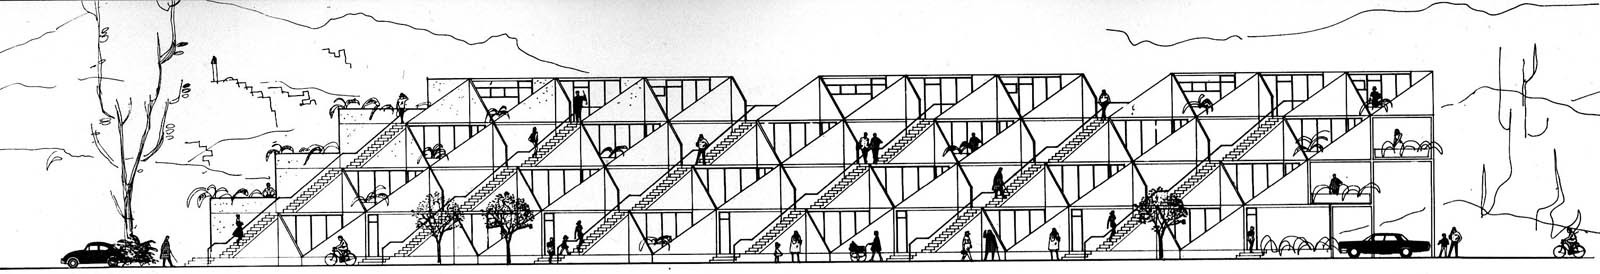 Section view highlighting the pre-fabricated, trapezoid shapes that defined the original construction. (Plan courtesy Arieh Sharon office)